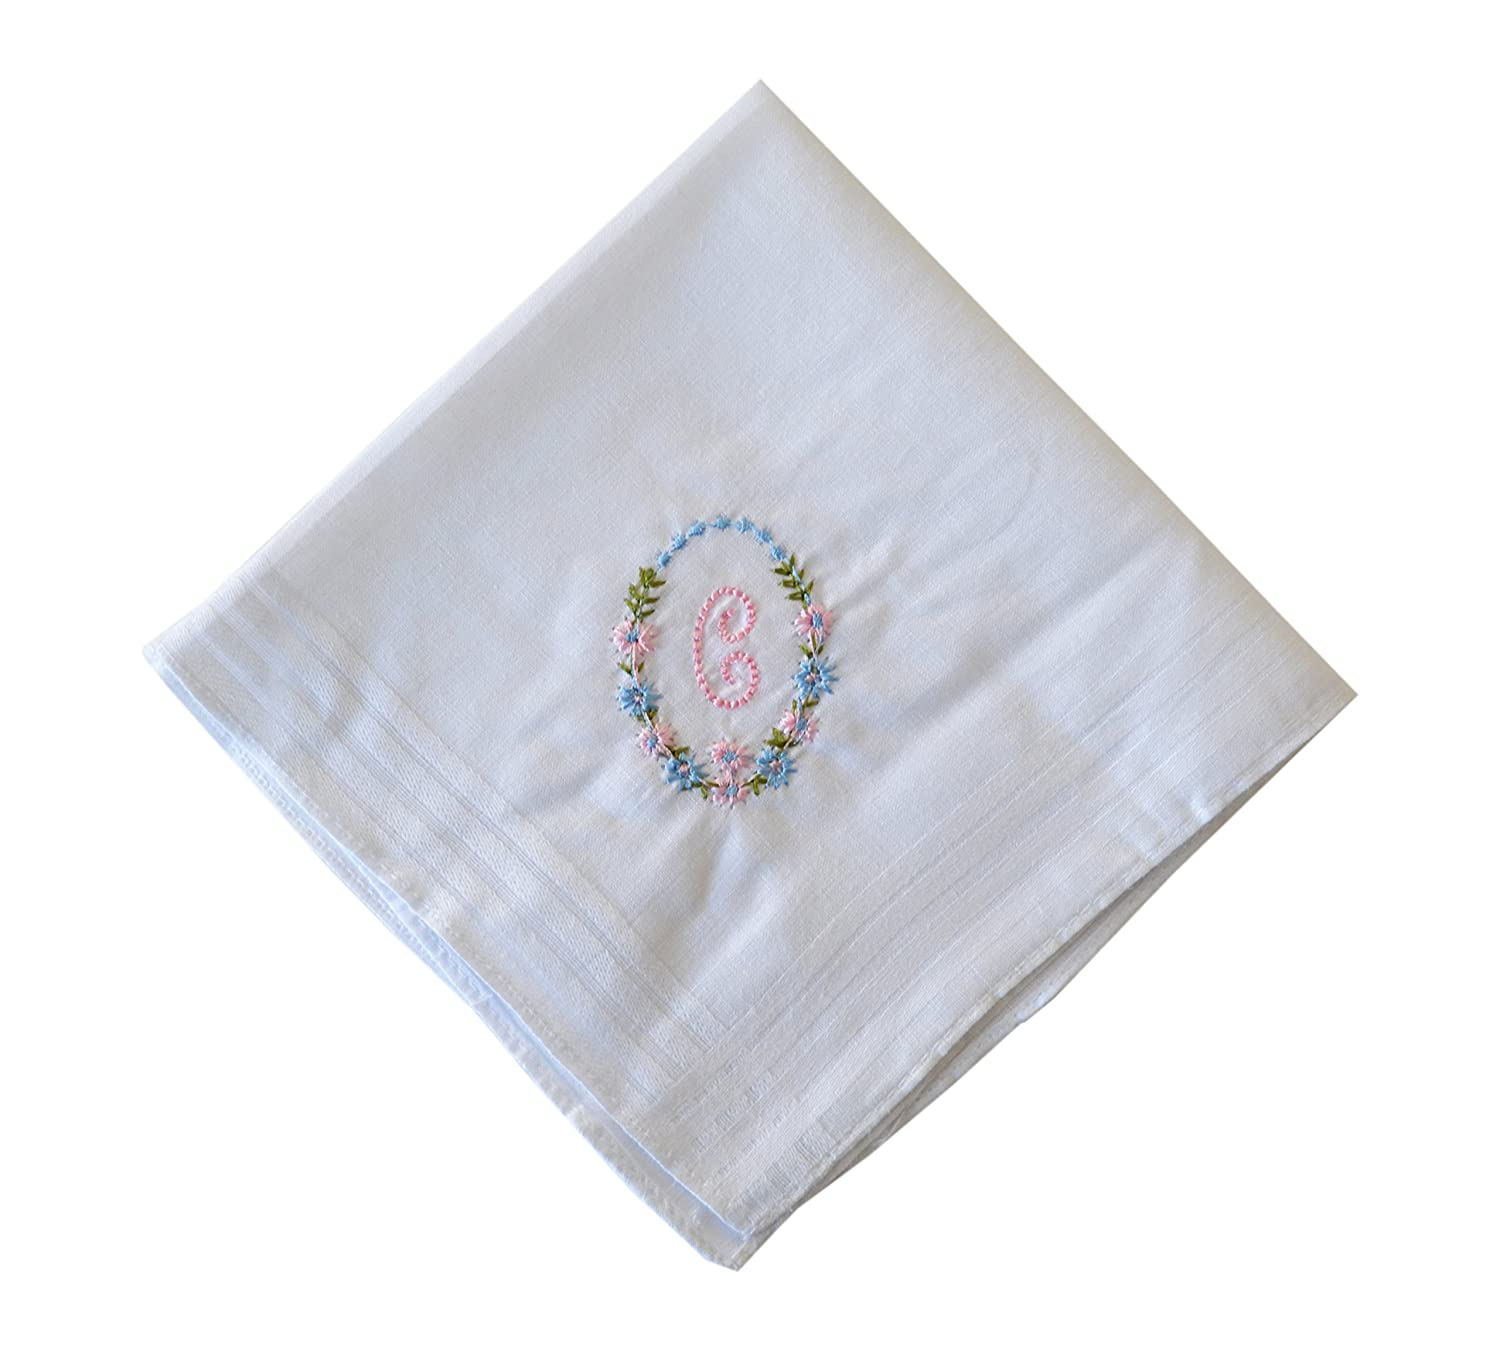 13 Pack Bakers Dozen Womens/Ladies White Handkerchiefs With Initial Embroidery, 100% Cotton, Various Letters Letter A